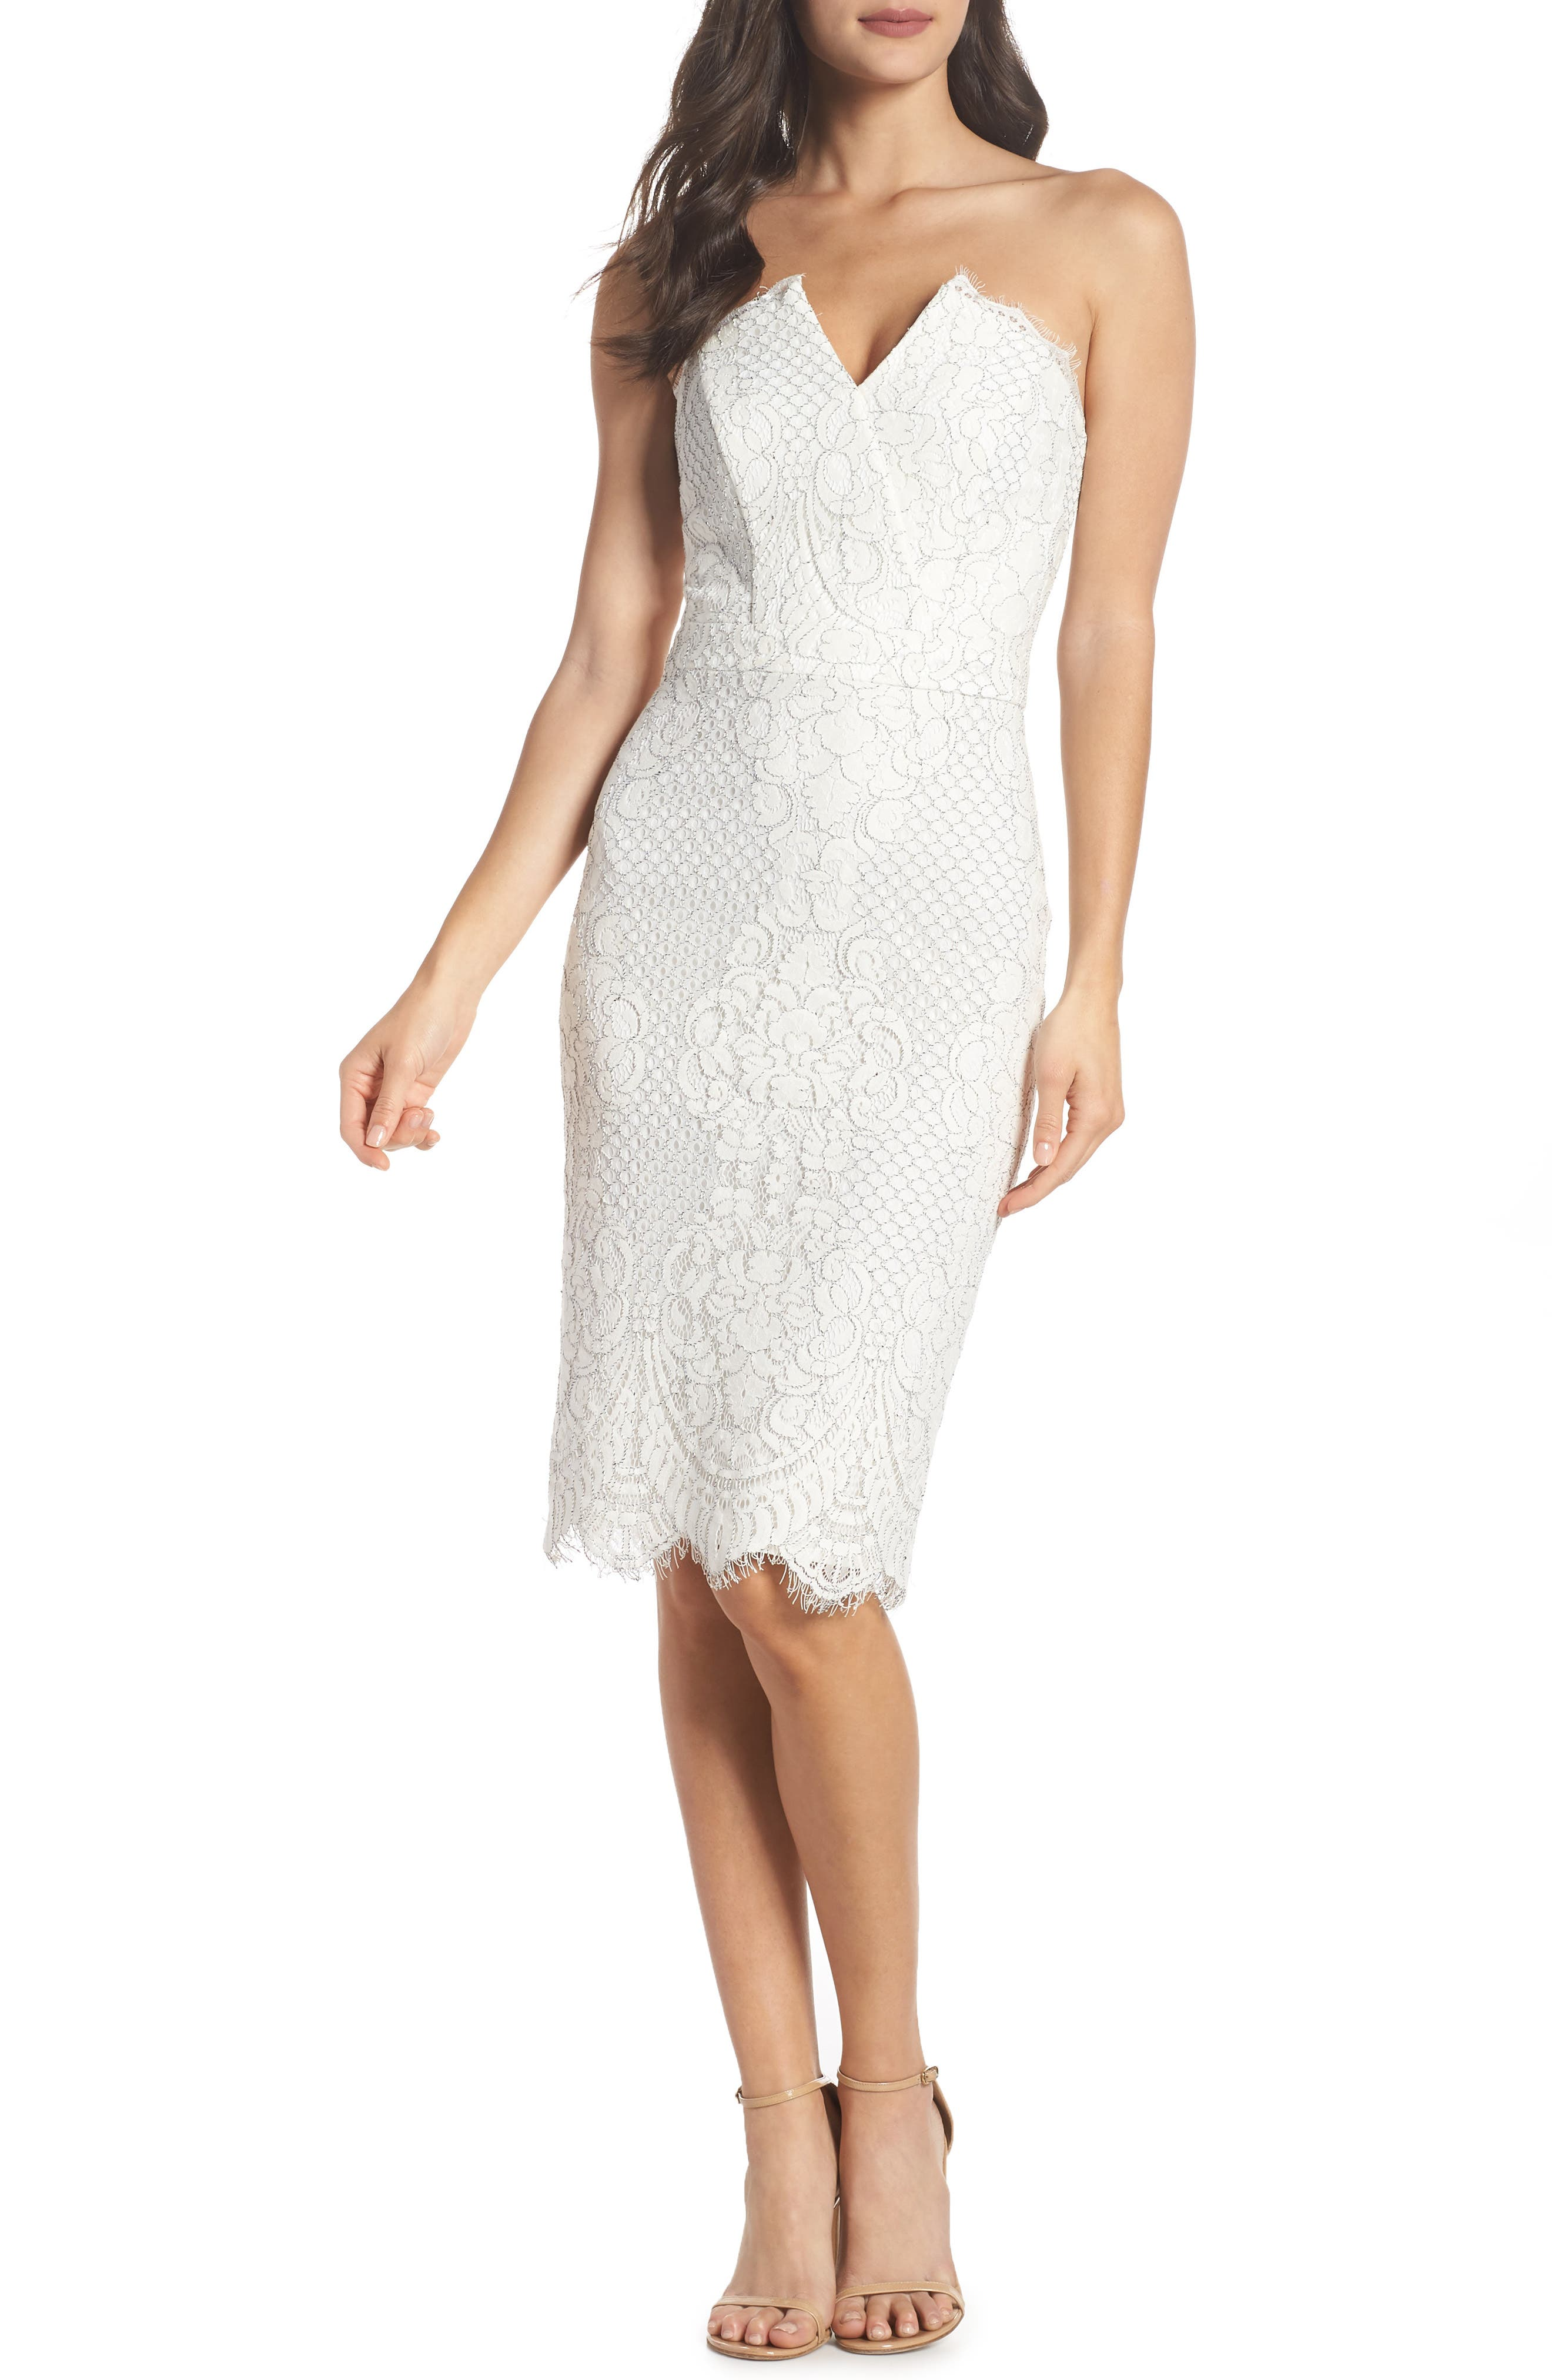 HARLYN Strapless Lace Cocktail Dress, Main, color, 902